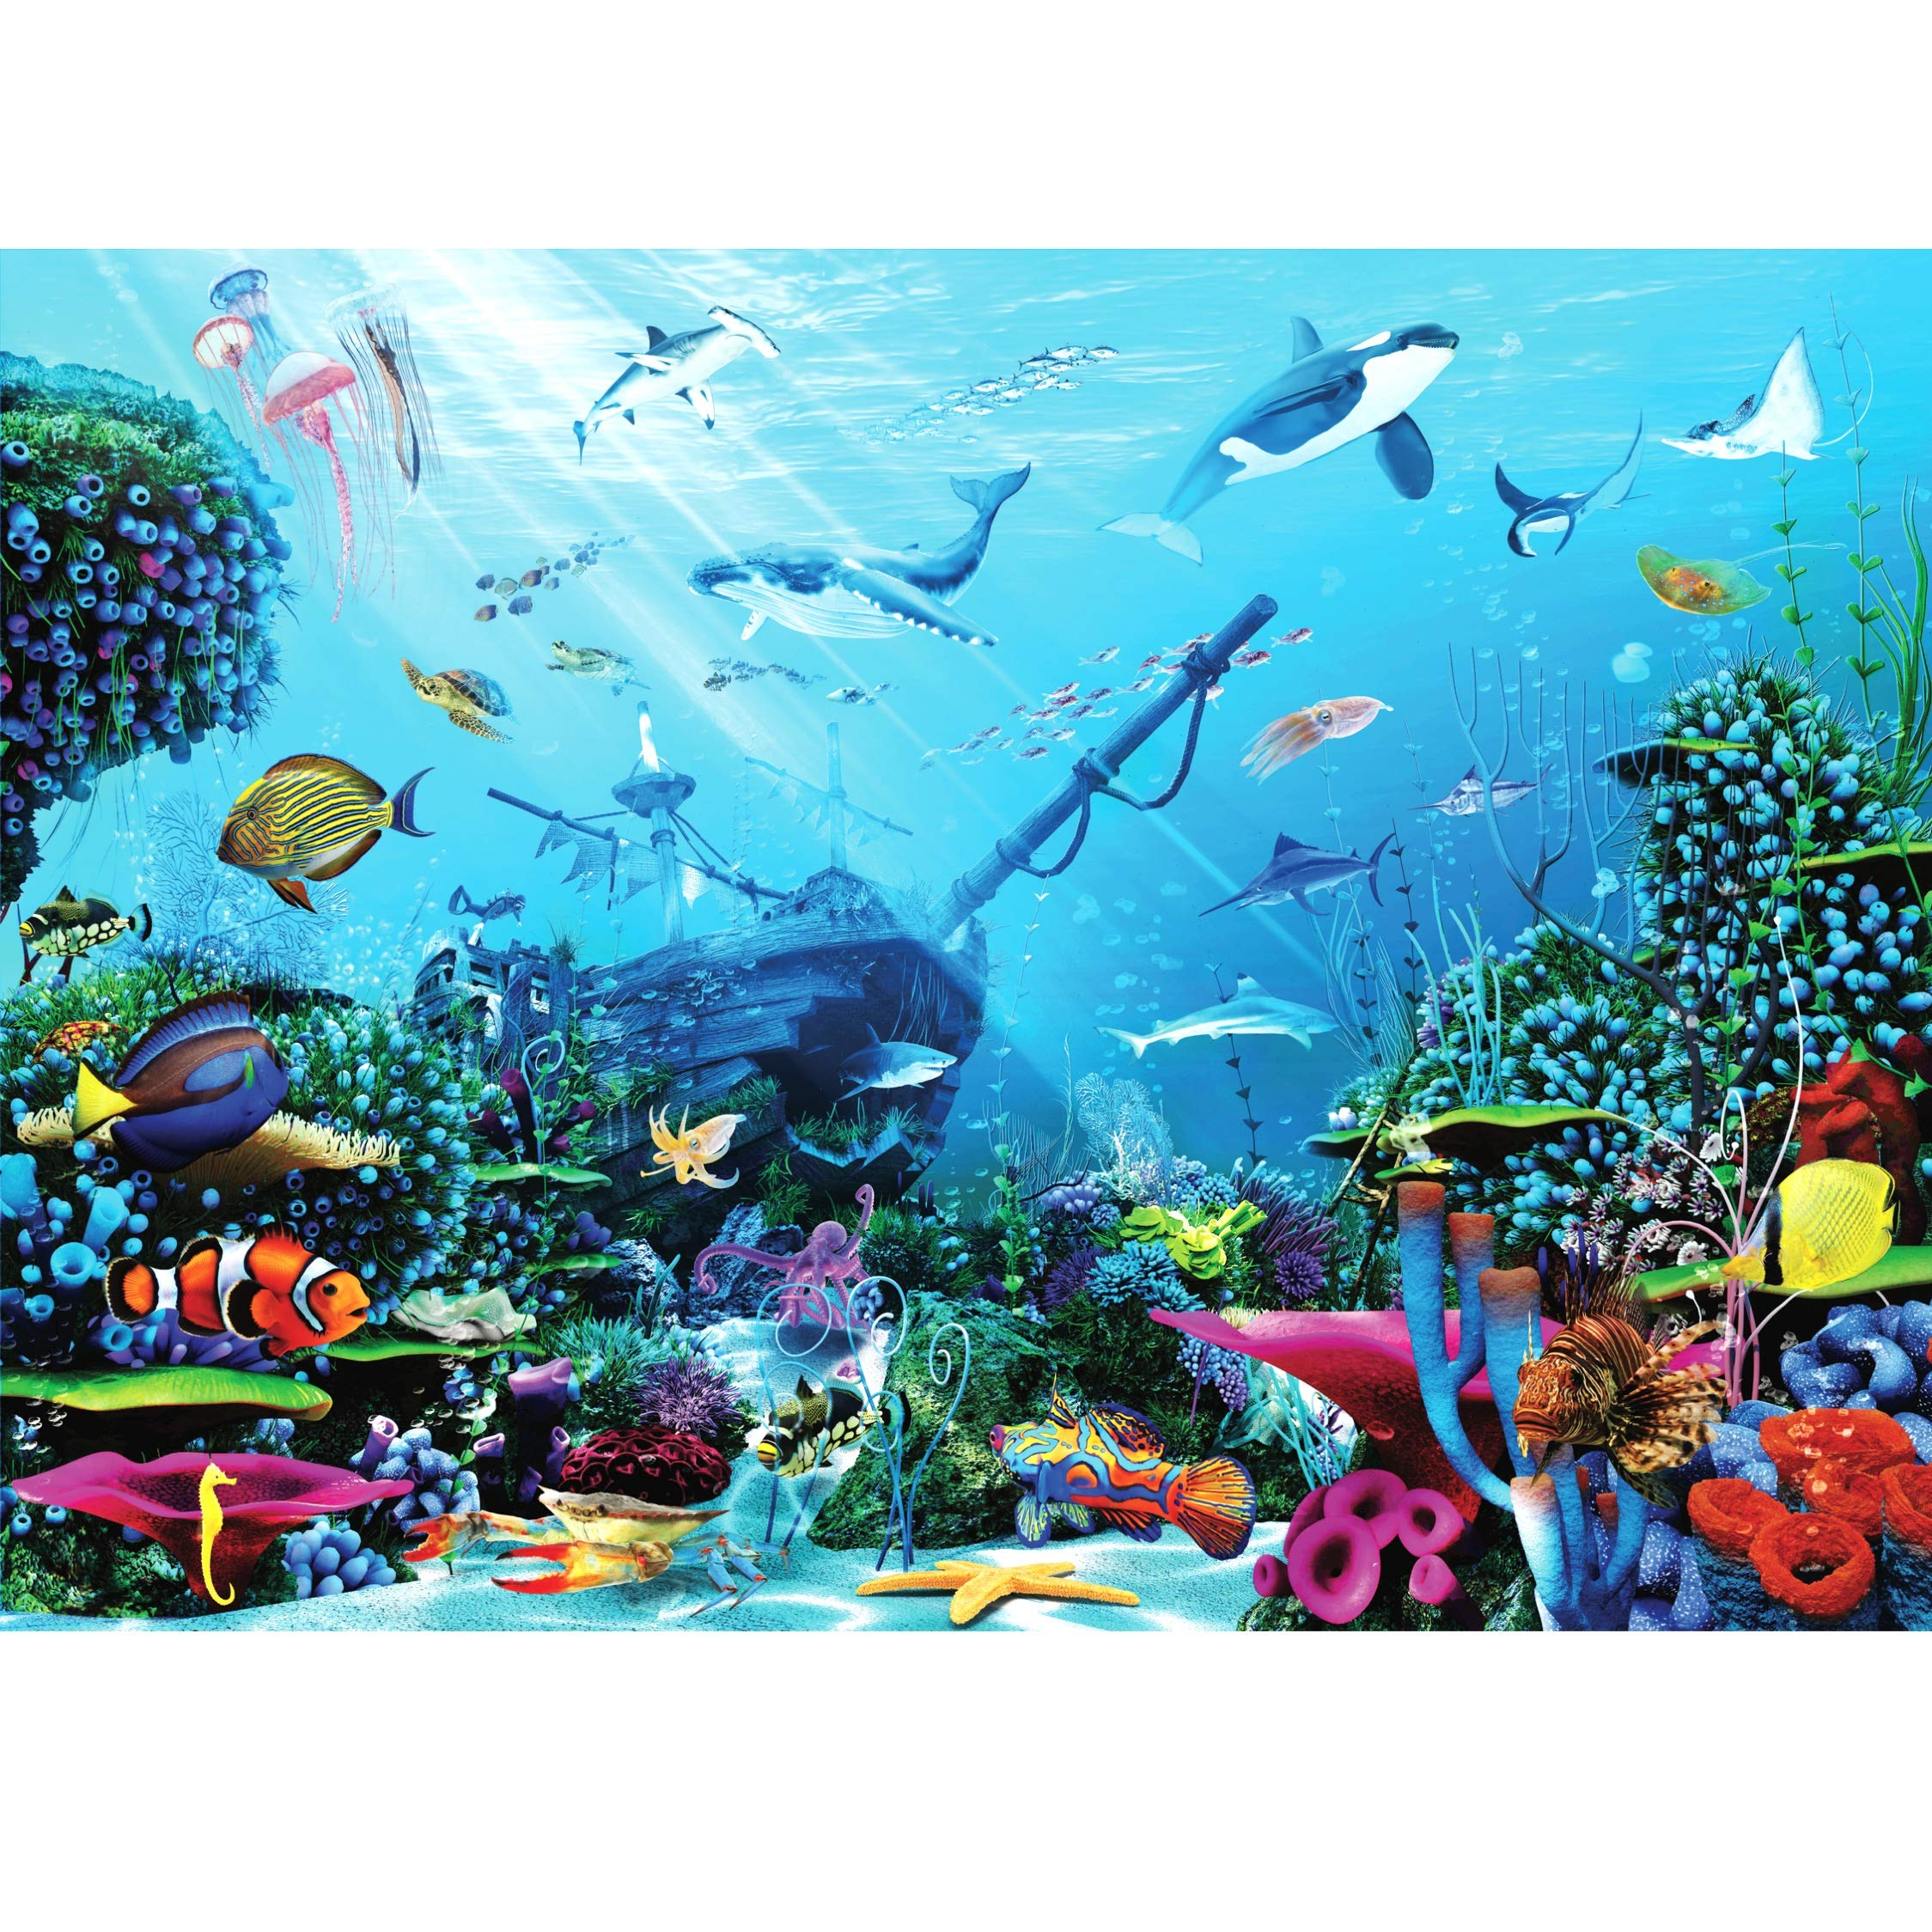 Puzzle Dazzle - Jigsaw Puzzles for Adults 1000 Pieces - UNDERWATER ADVENTURE 70 x 50 cm - UK Brand for Toys - Interactive 1000 Piece Jigsaw Puzzles with Gaming Experience - Premium Jigsaw Puzzle Box